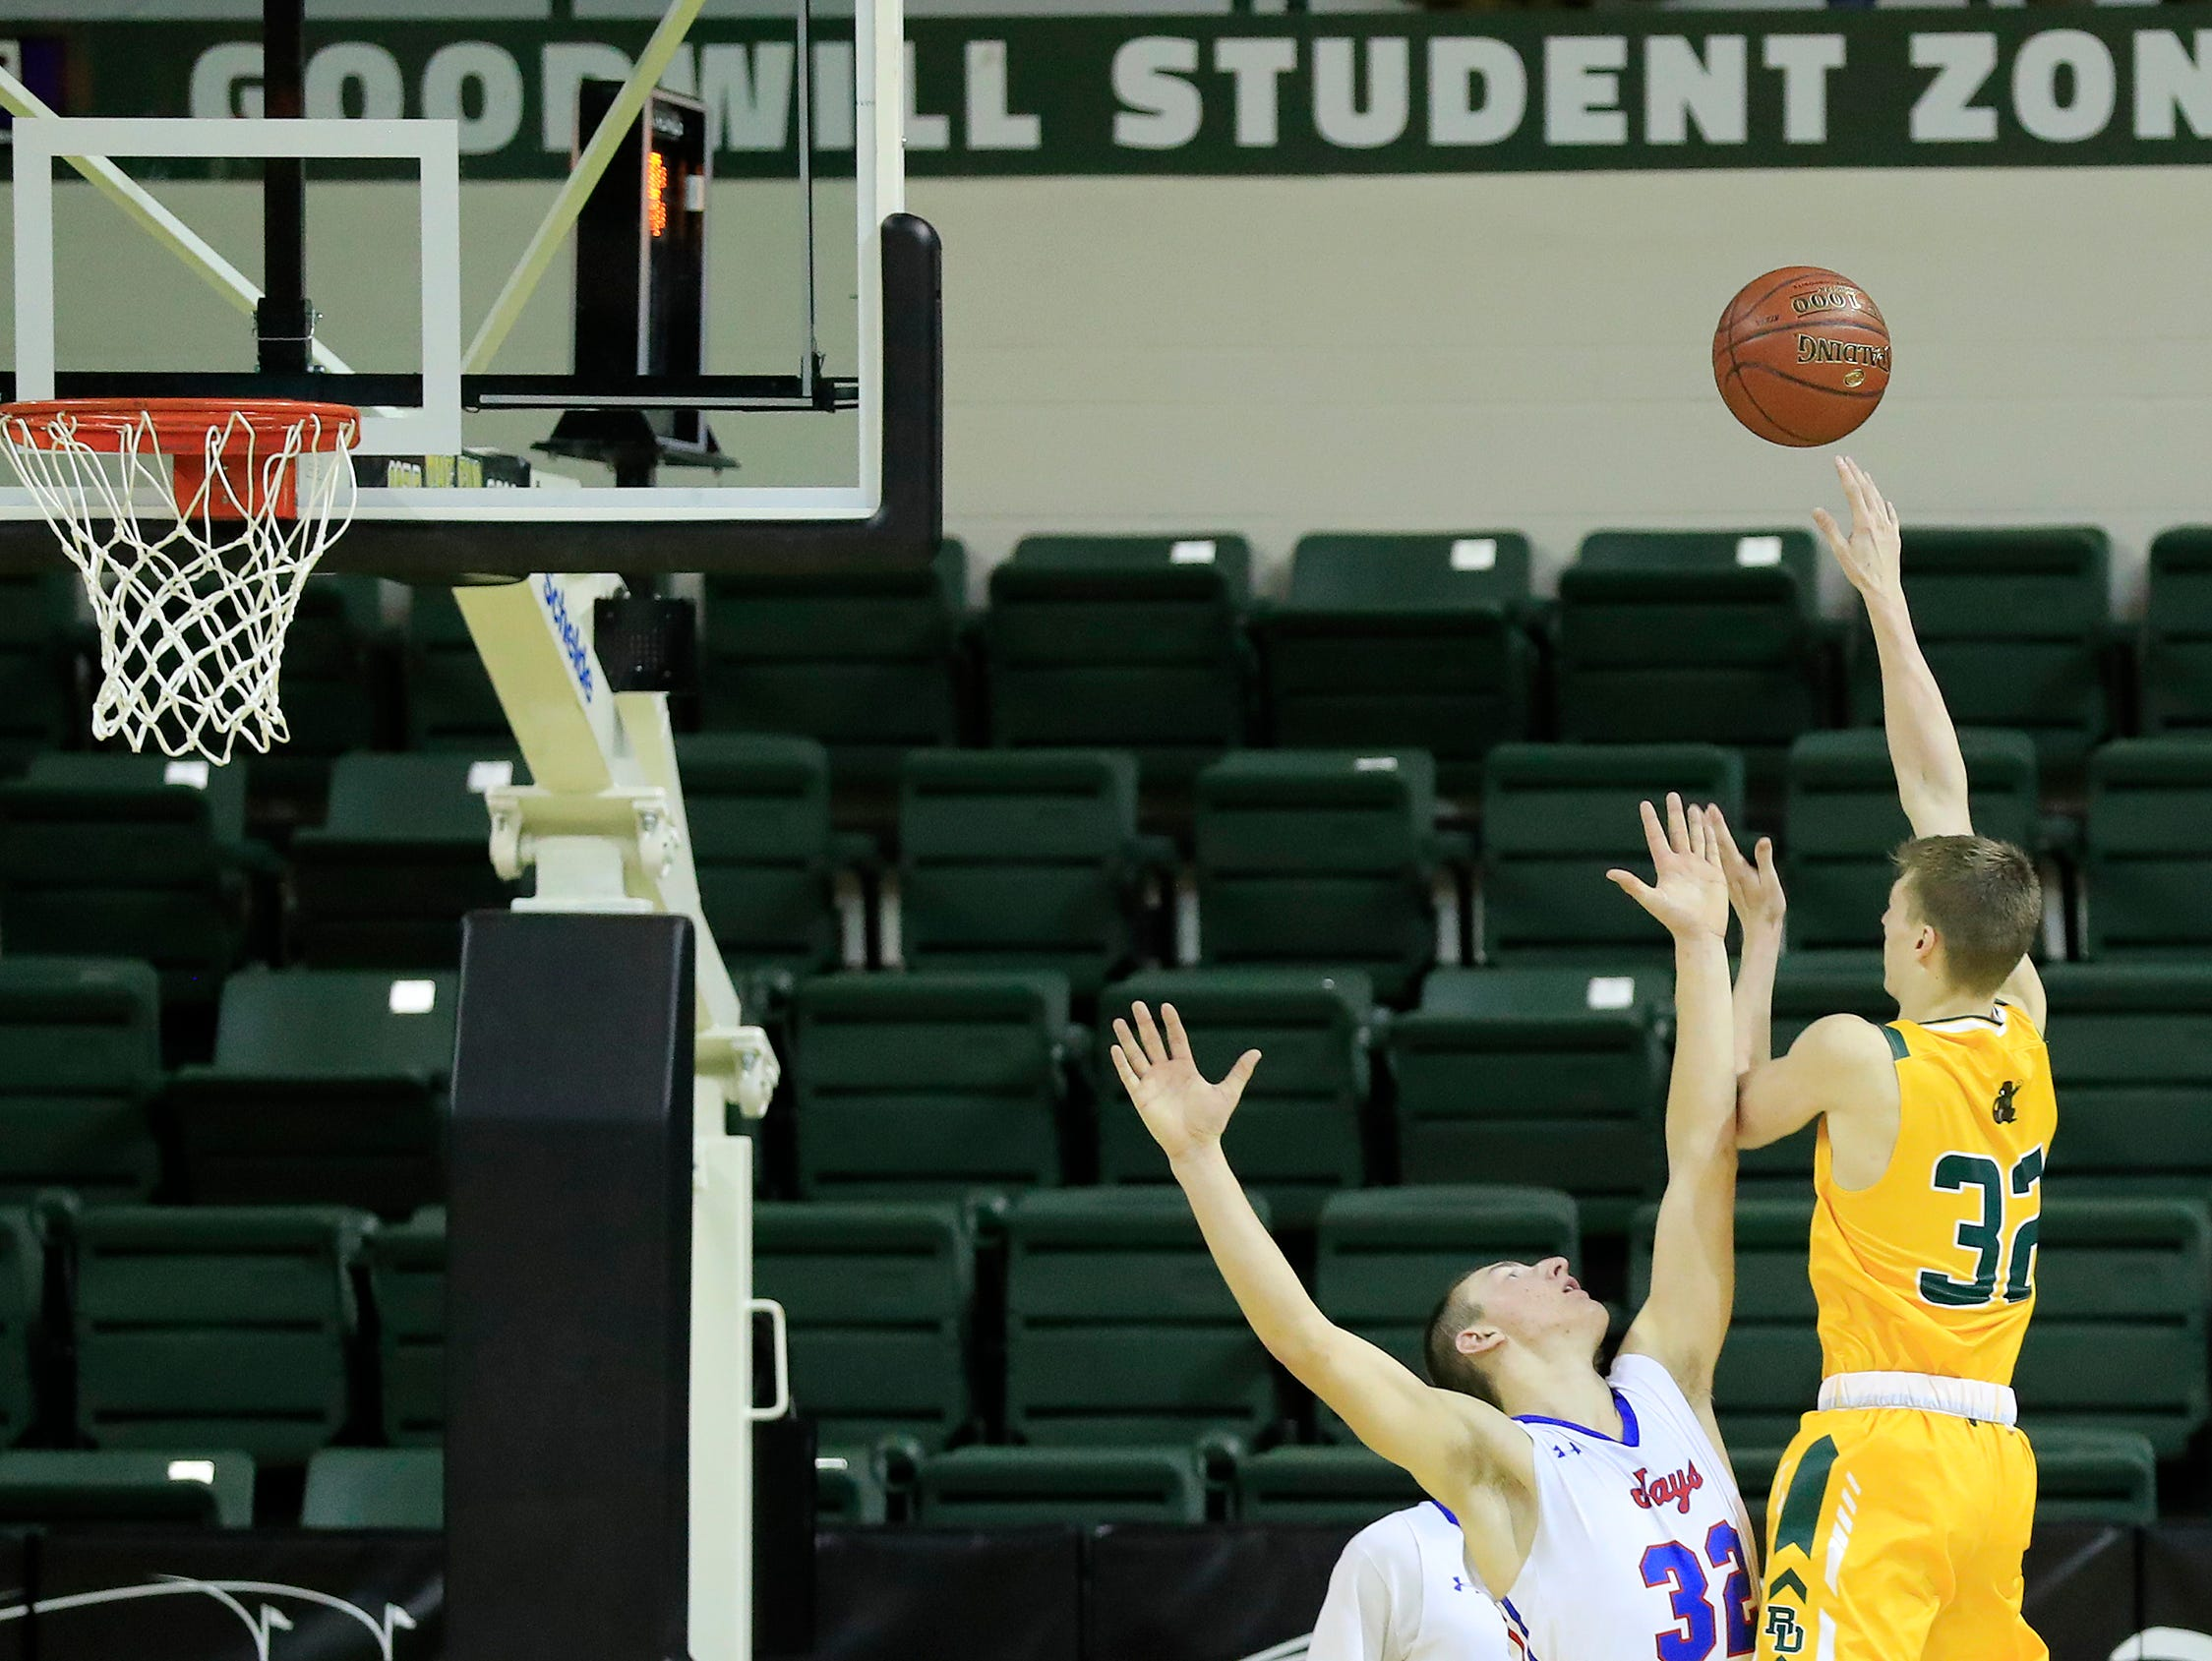 Beaver Dam's Jordan Schwanke (32) hits a shot at the buzzer to beat Merrill at the Shawano Shootout at the Kress Center on Friday, December 28, 2018 in Green Bay, Wis.